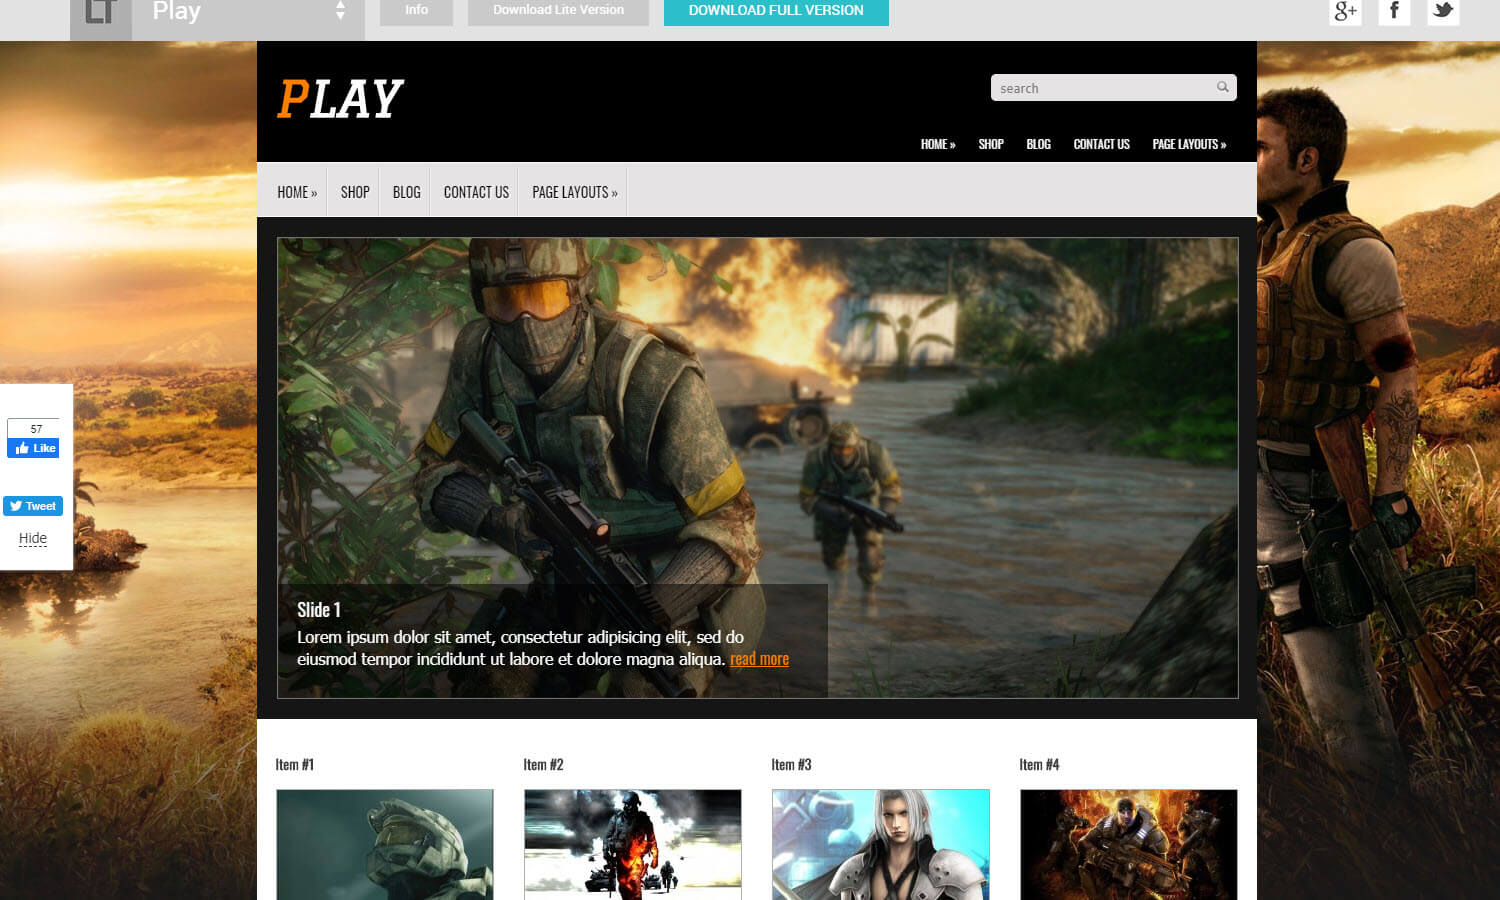 Play screenshot